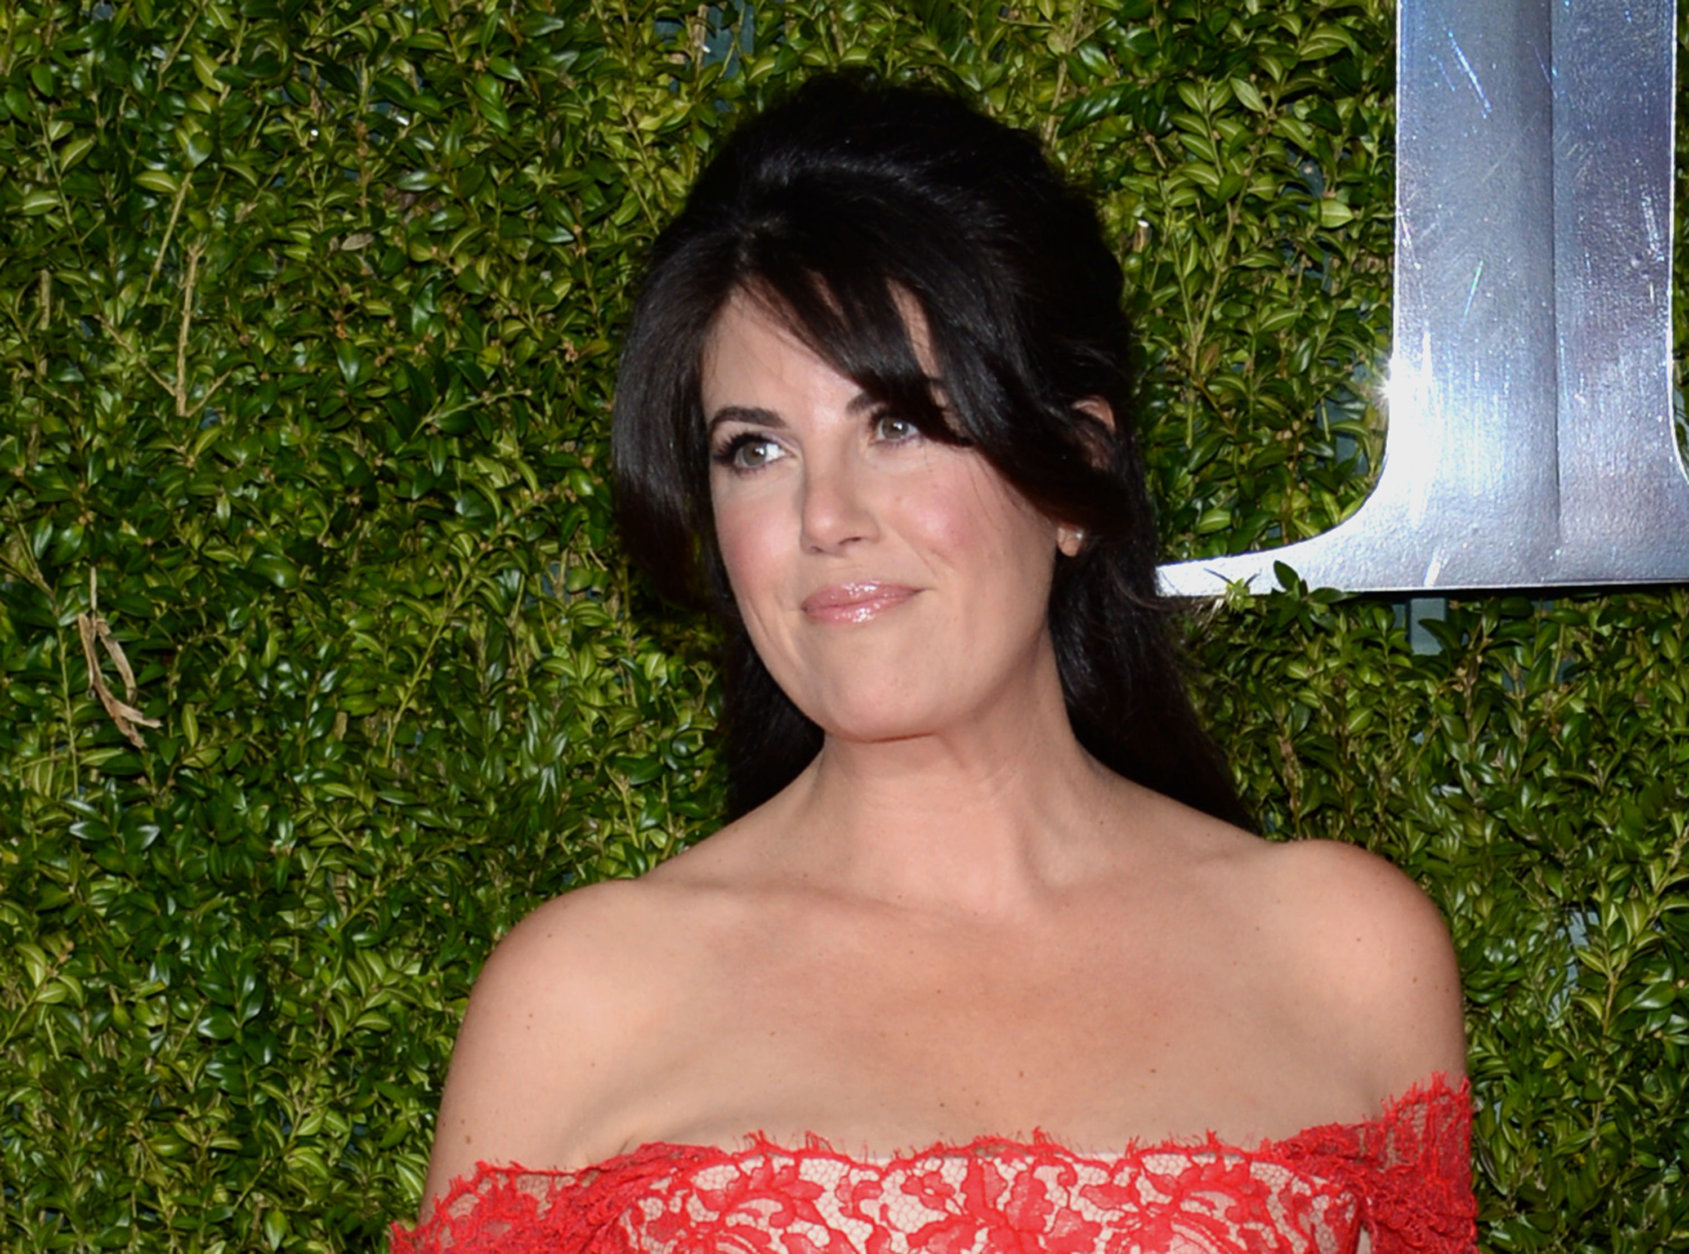 Monica Lewinsky arrives at the 69th annual Tony Awards at Radio City Music Hall on Sunday, June 7, 2015, in New York. (Photo by Evan Agostini/Invision/AP)